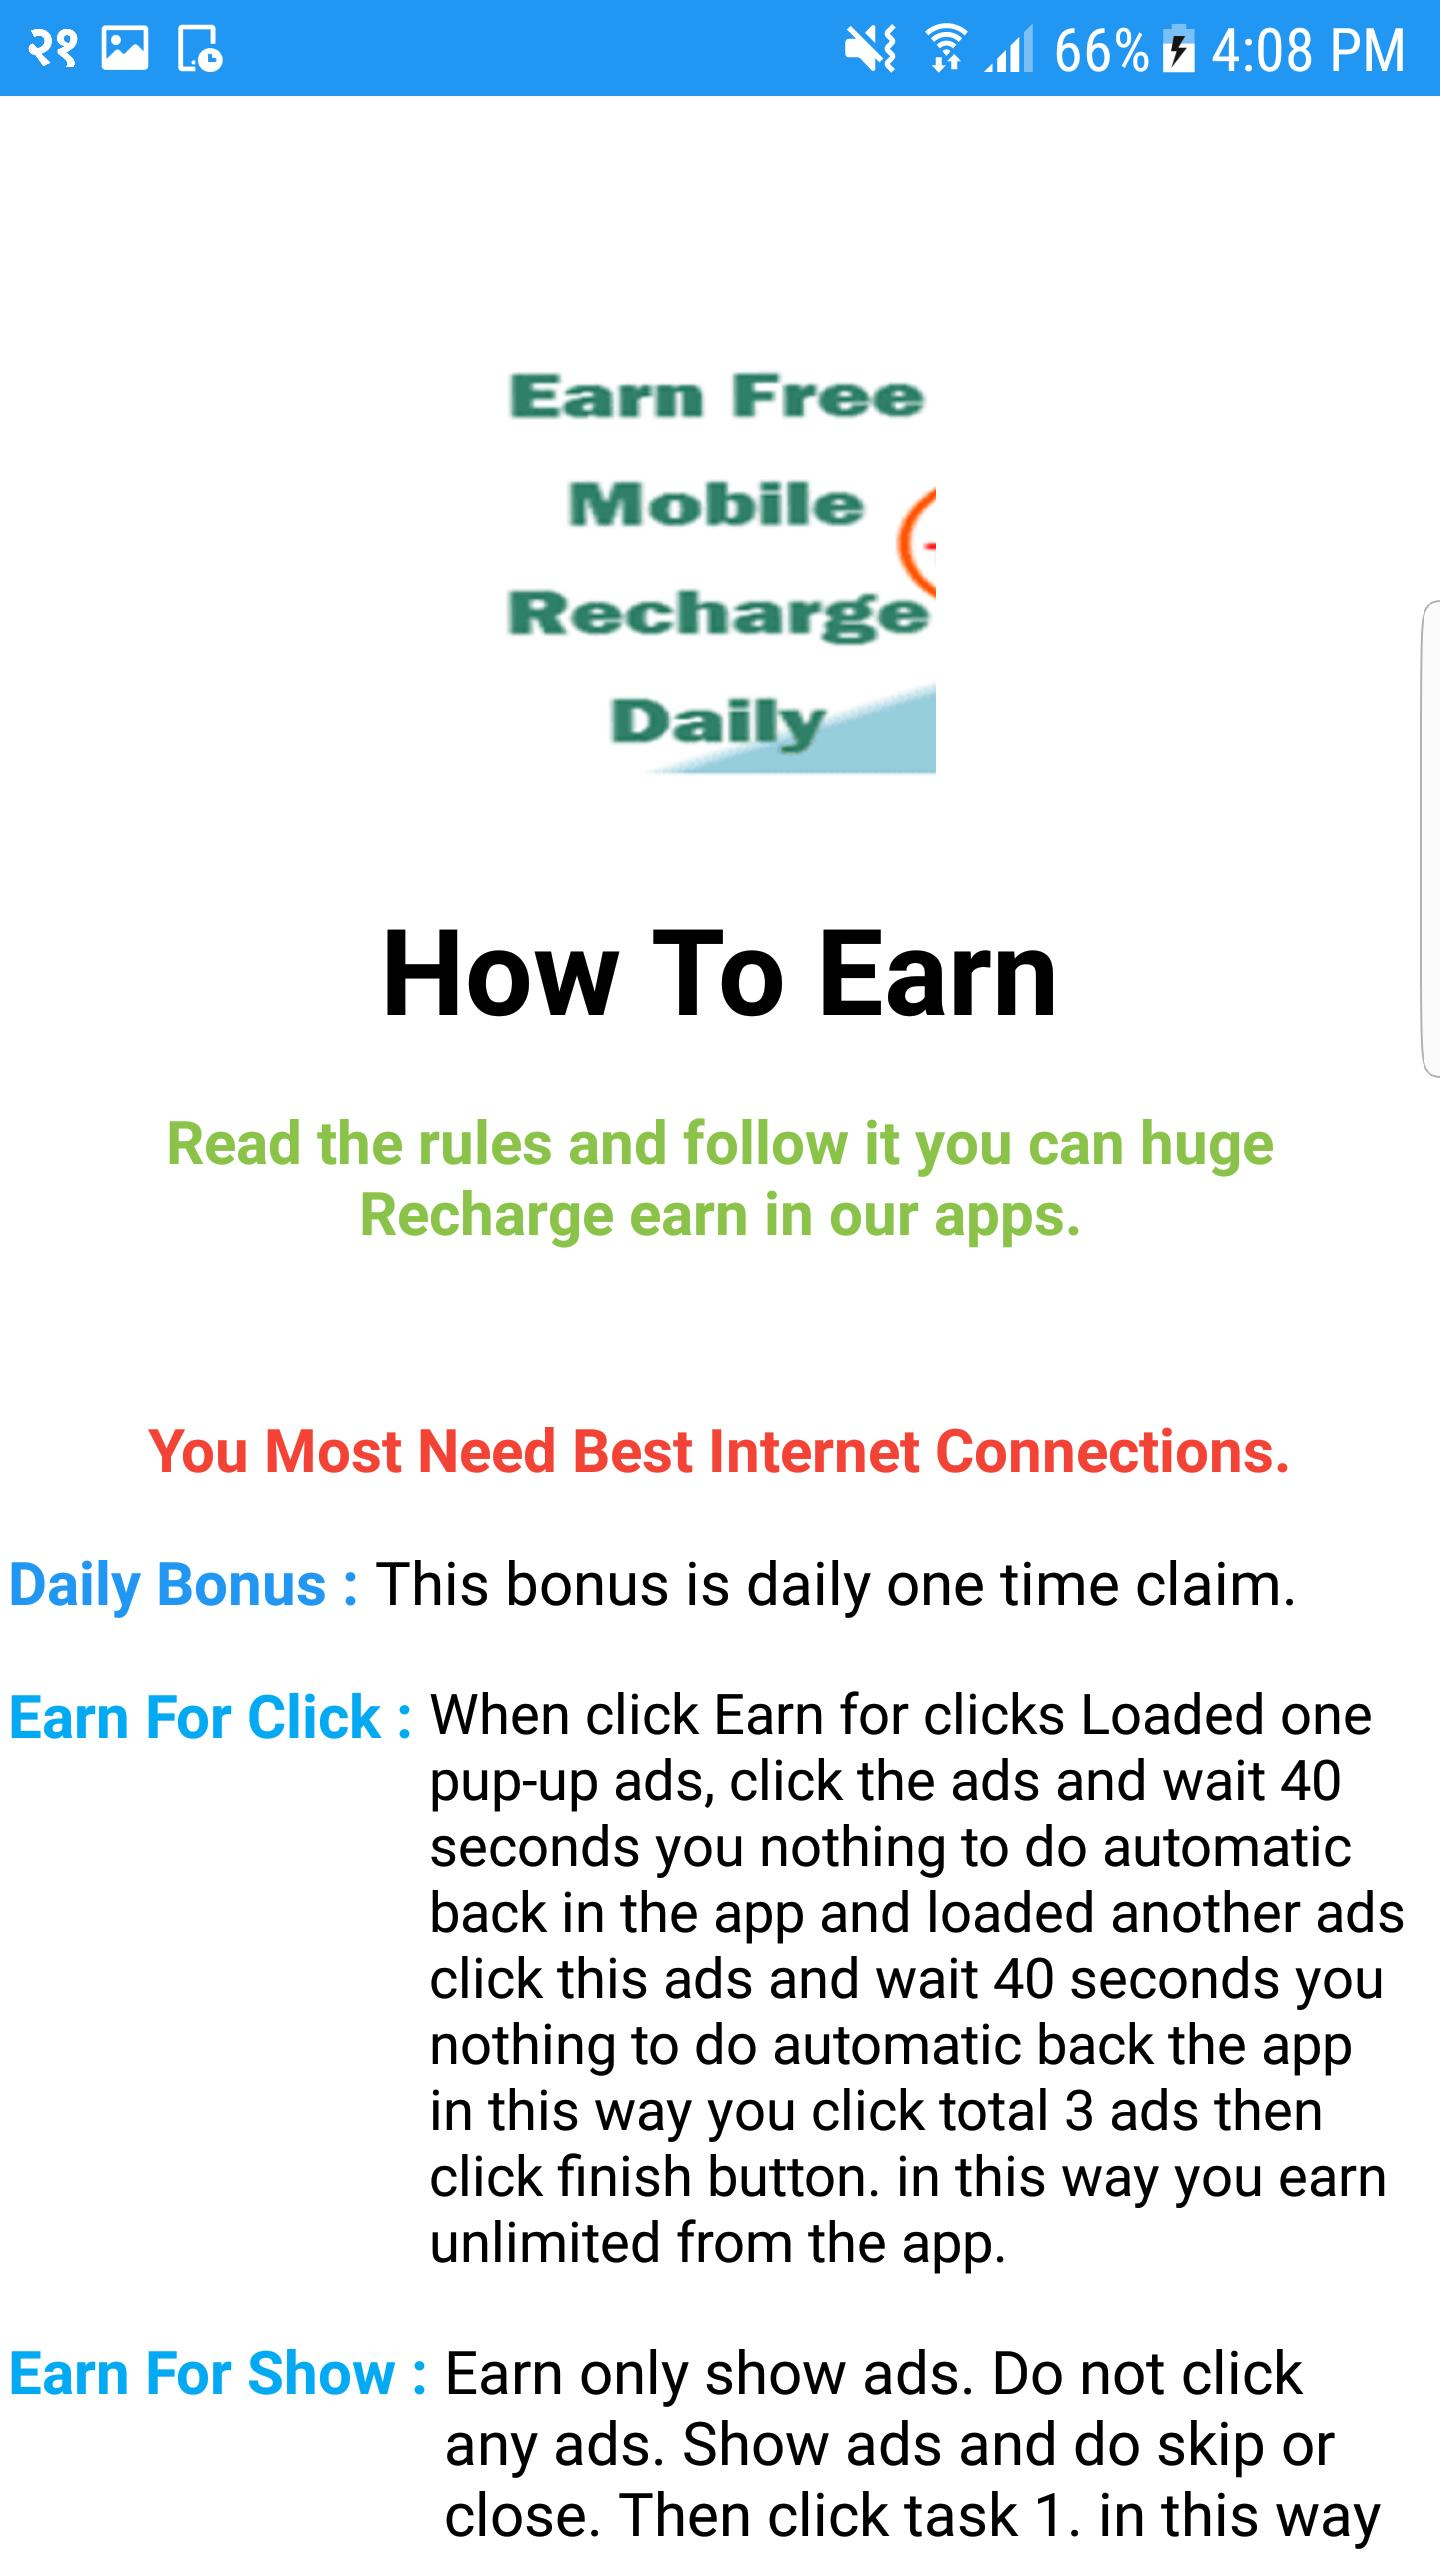 Earn Free Recharge Nepal for Android - APK Download